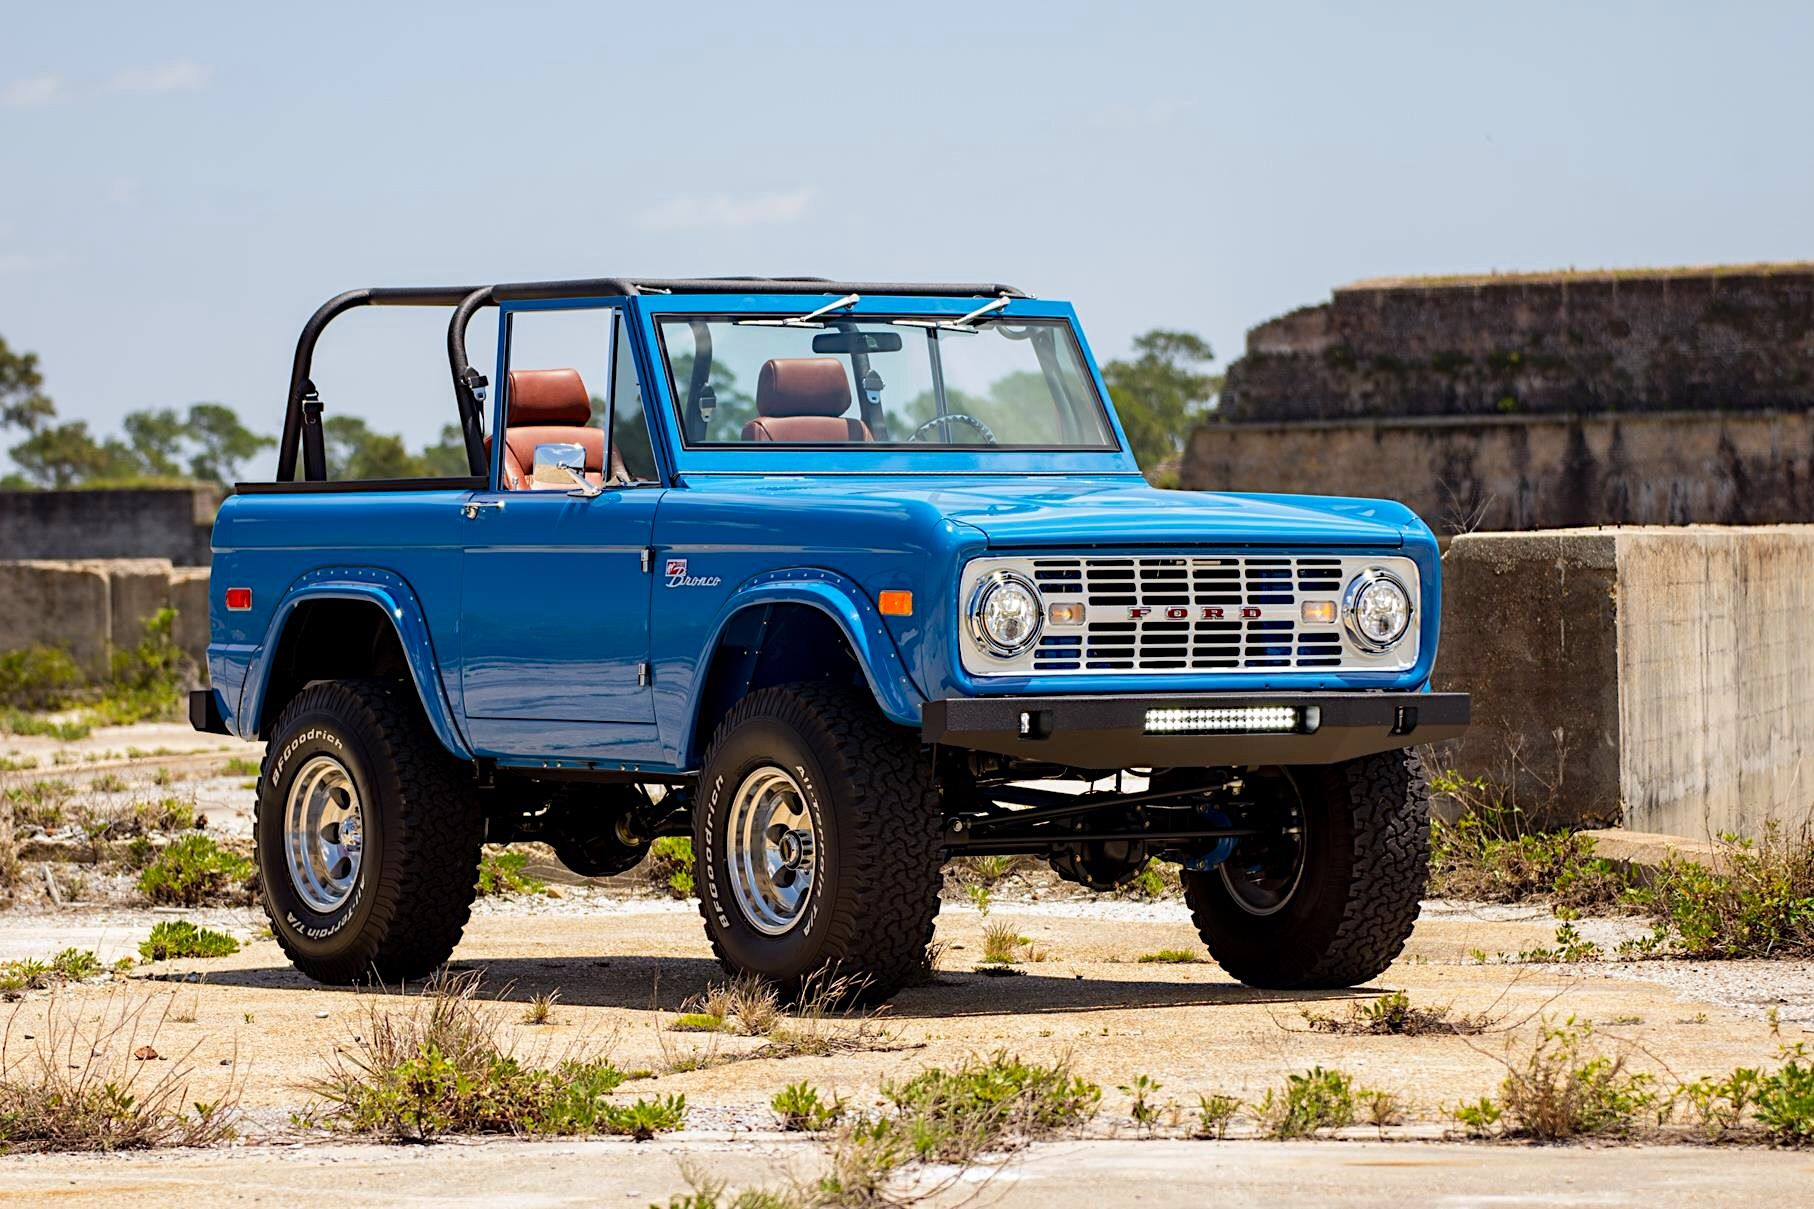 Fully Restored Bright Blue 76 Ford Bronco Jeep Branco Jeep Ford